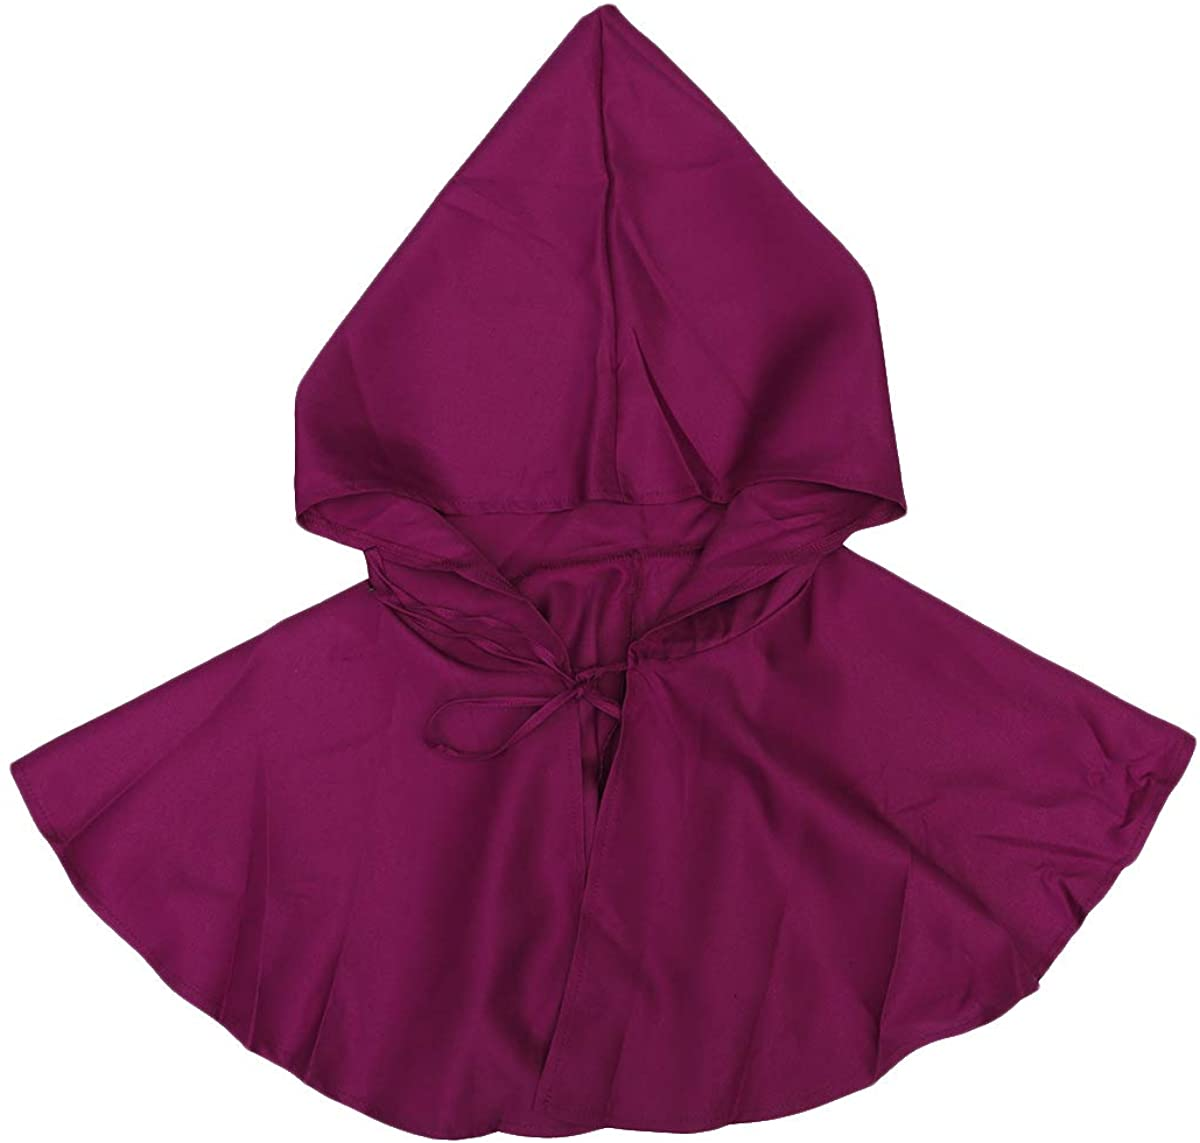 BESPORTBLE Halloween Costume Hood Cape Cosplay Dress-Up Death Vampire Cloak Costume for Adults Christmas Party Props, Red